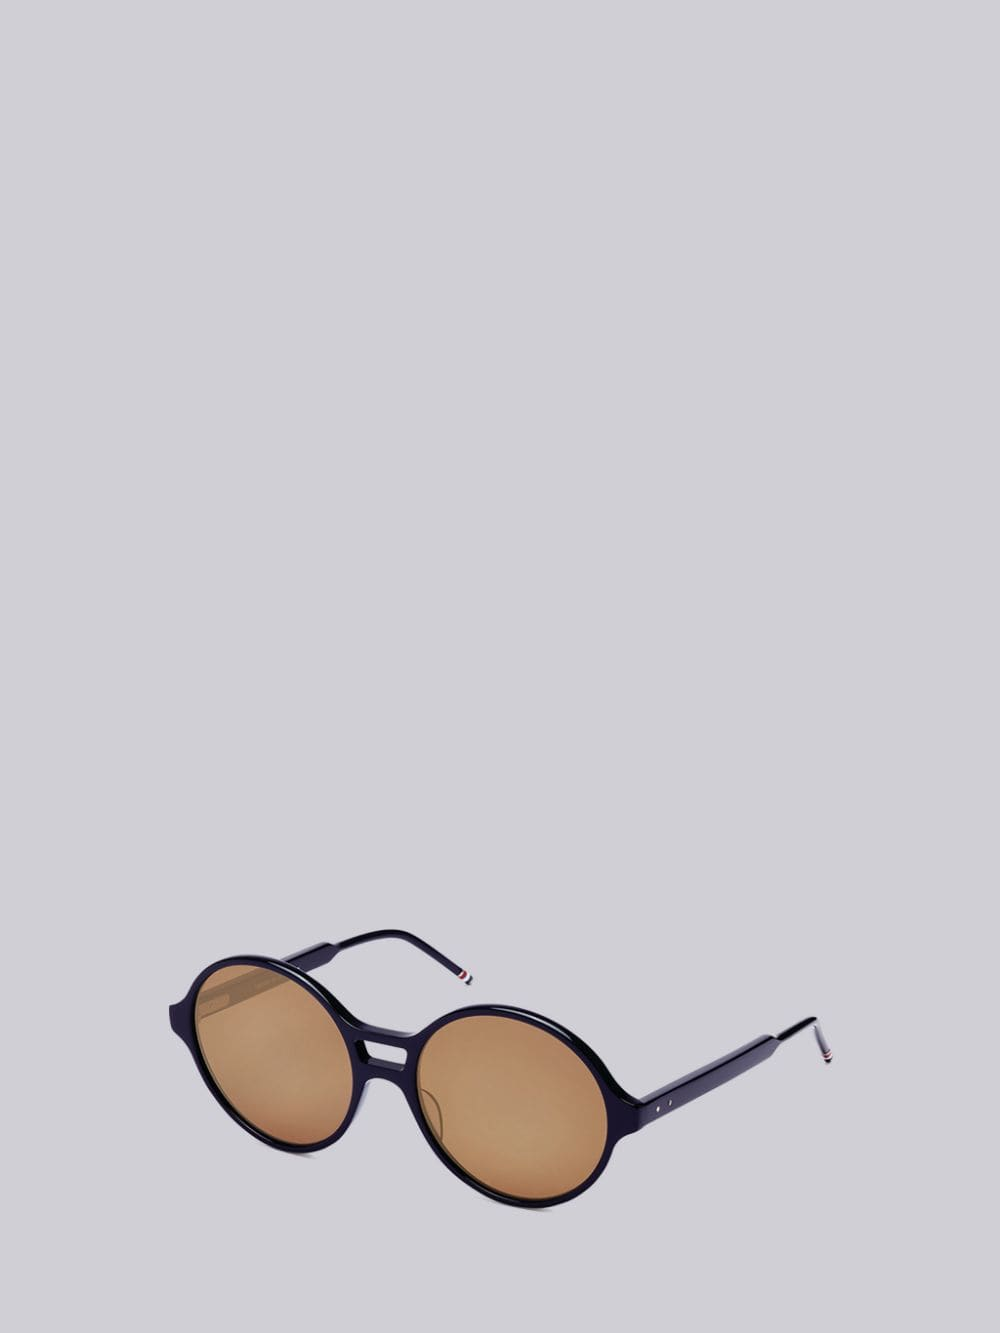 Round Dark Brown Sunglasses.jpg